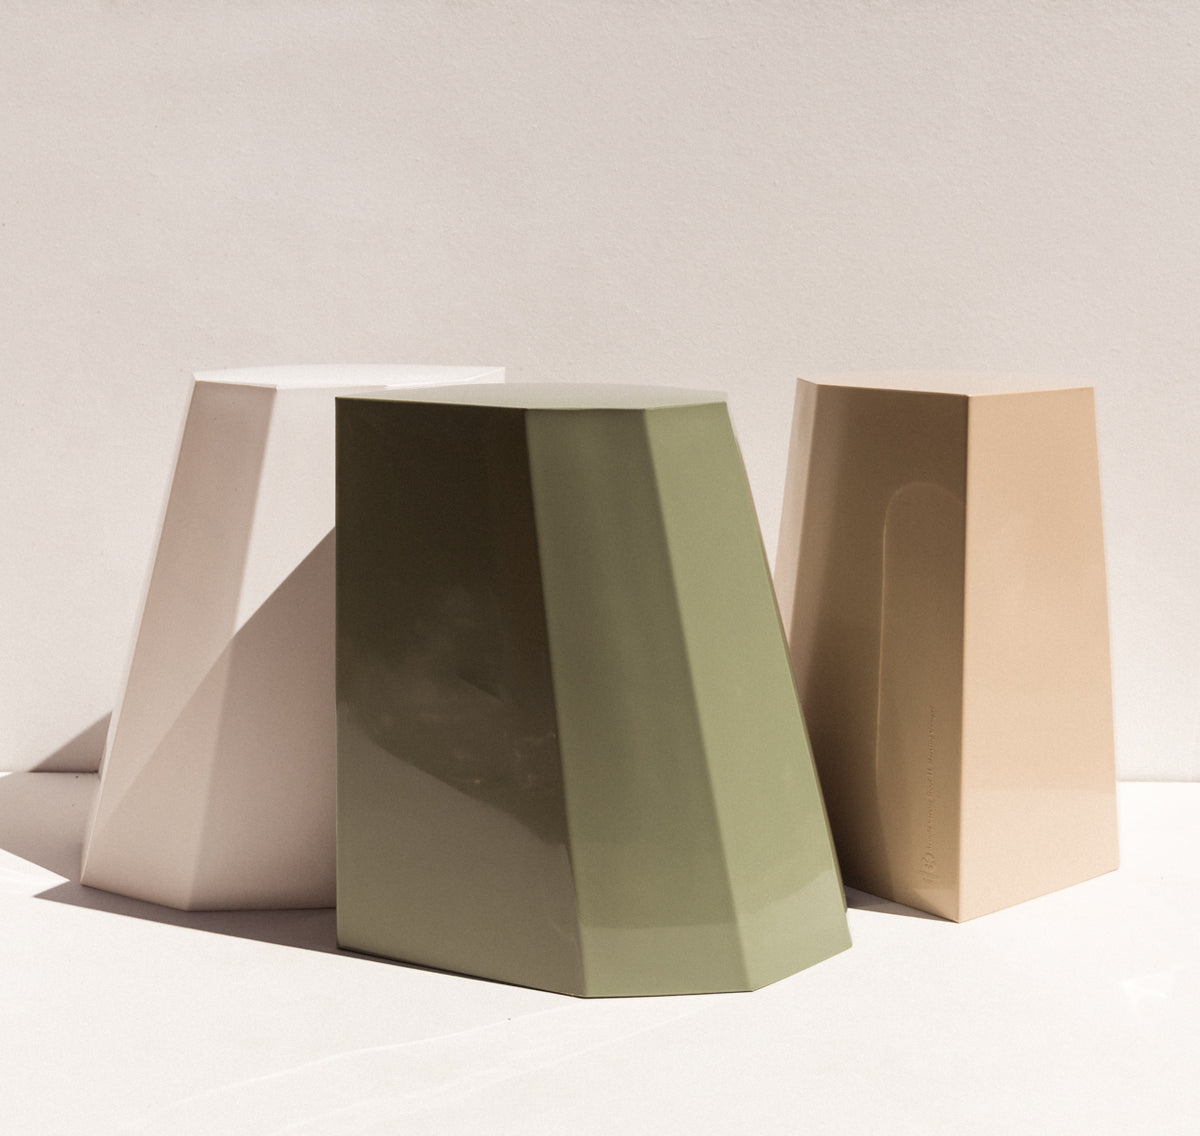 Martino Gamper Arnold Circus Stool Pale Eucalypt Australian stockist Makers' Mrkt , makers market Melbourne furniture